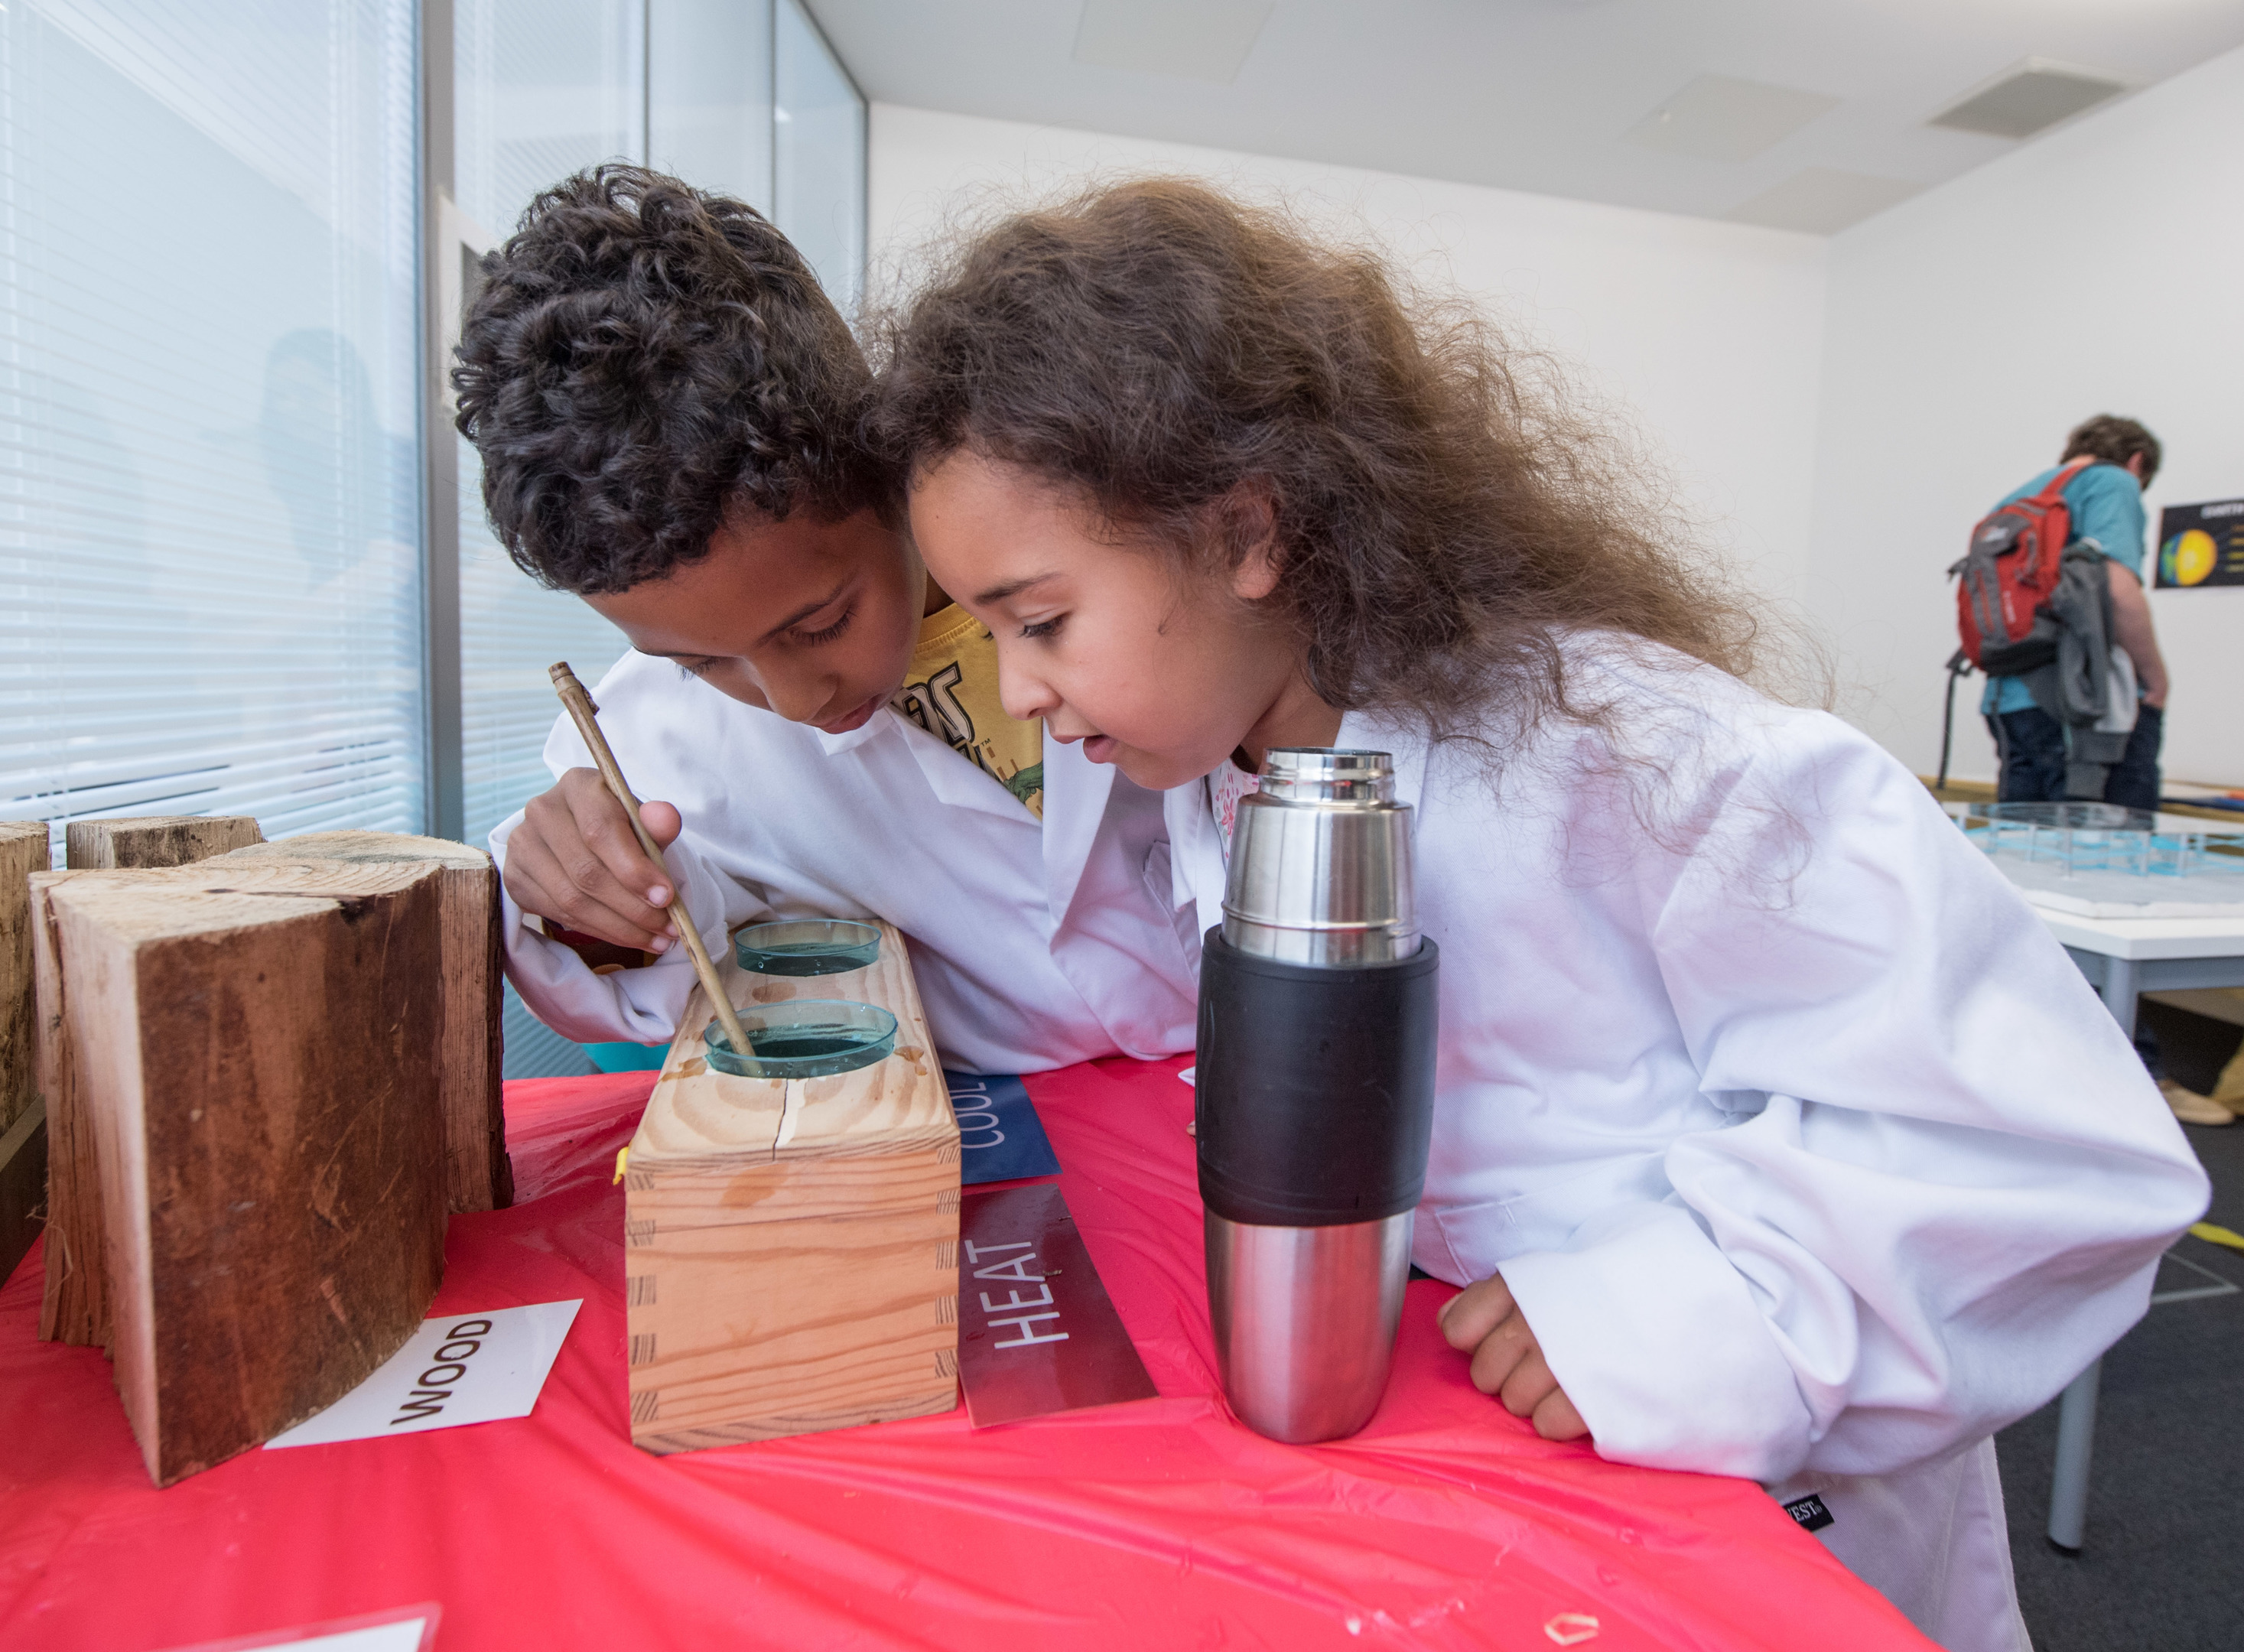 Oliver and Gabrielle Njugana solving a science puzzle